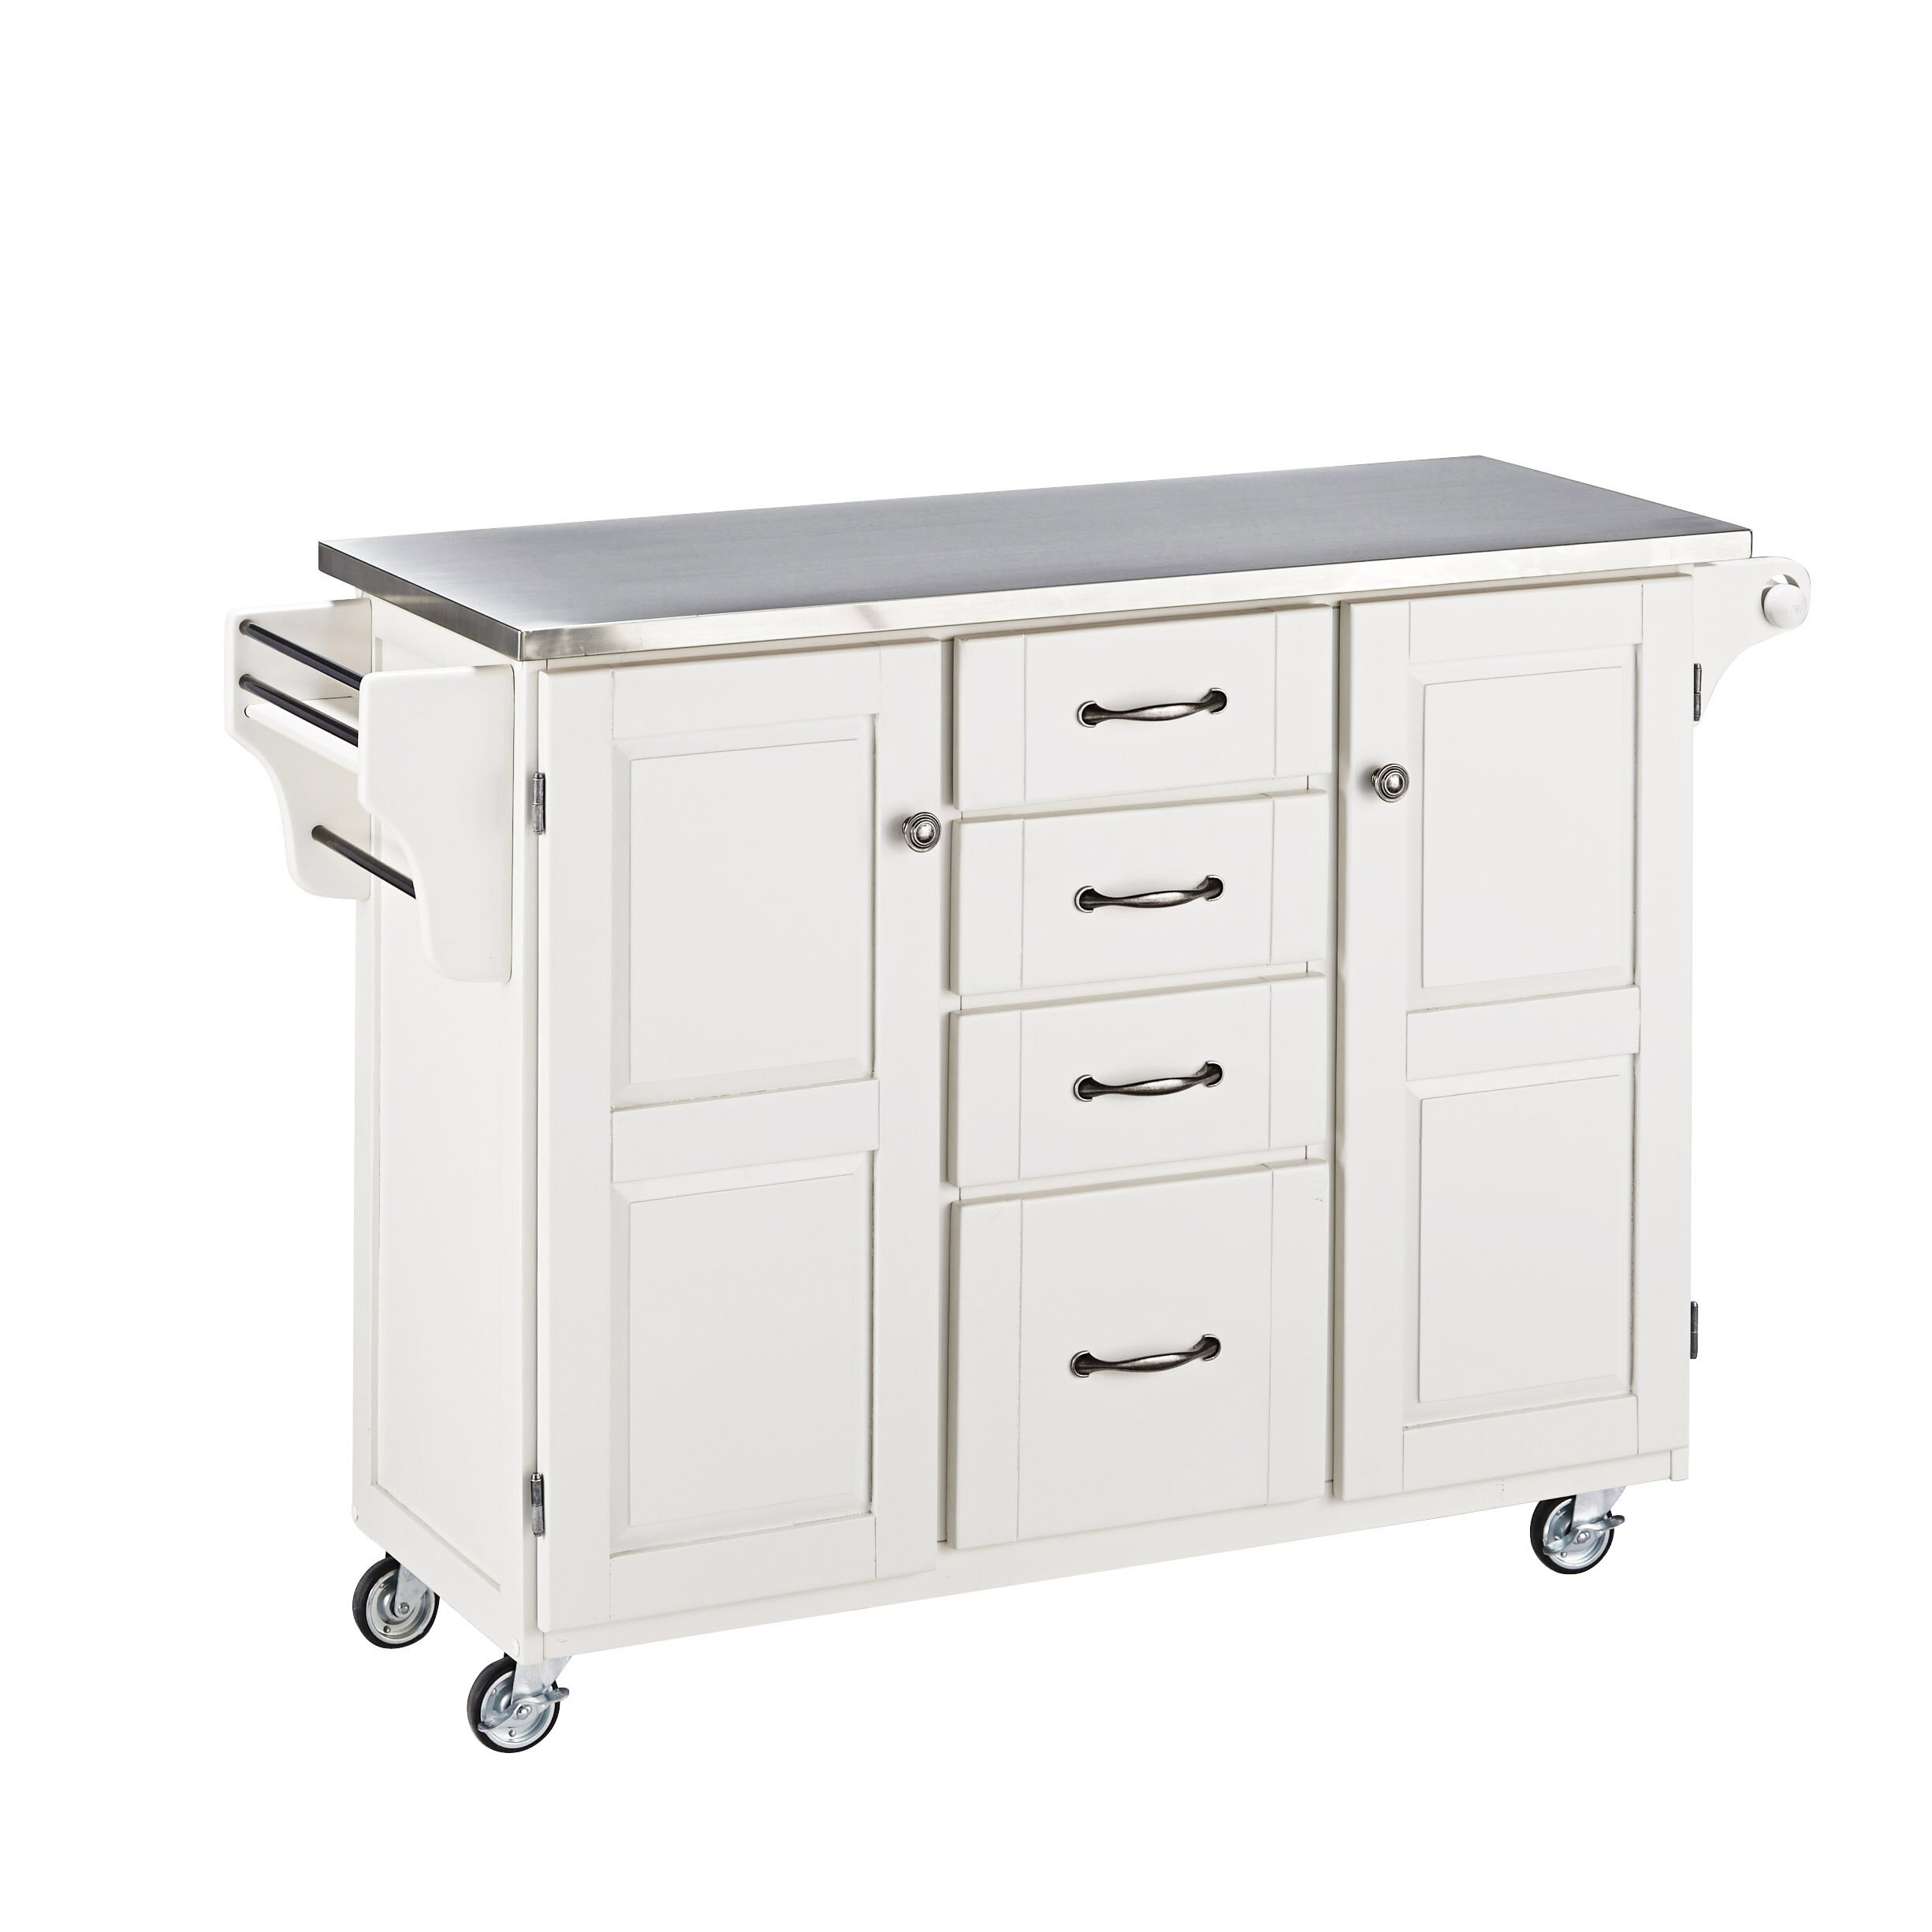 Home Styles Create-a-Cart Kitchen Island With Stainless